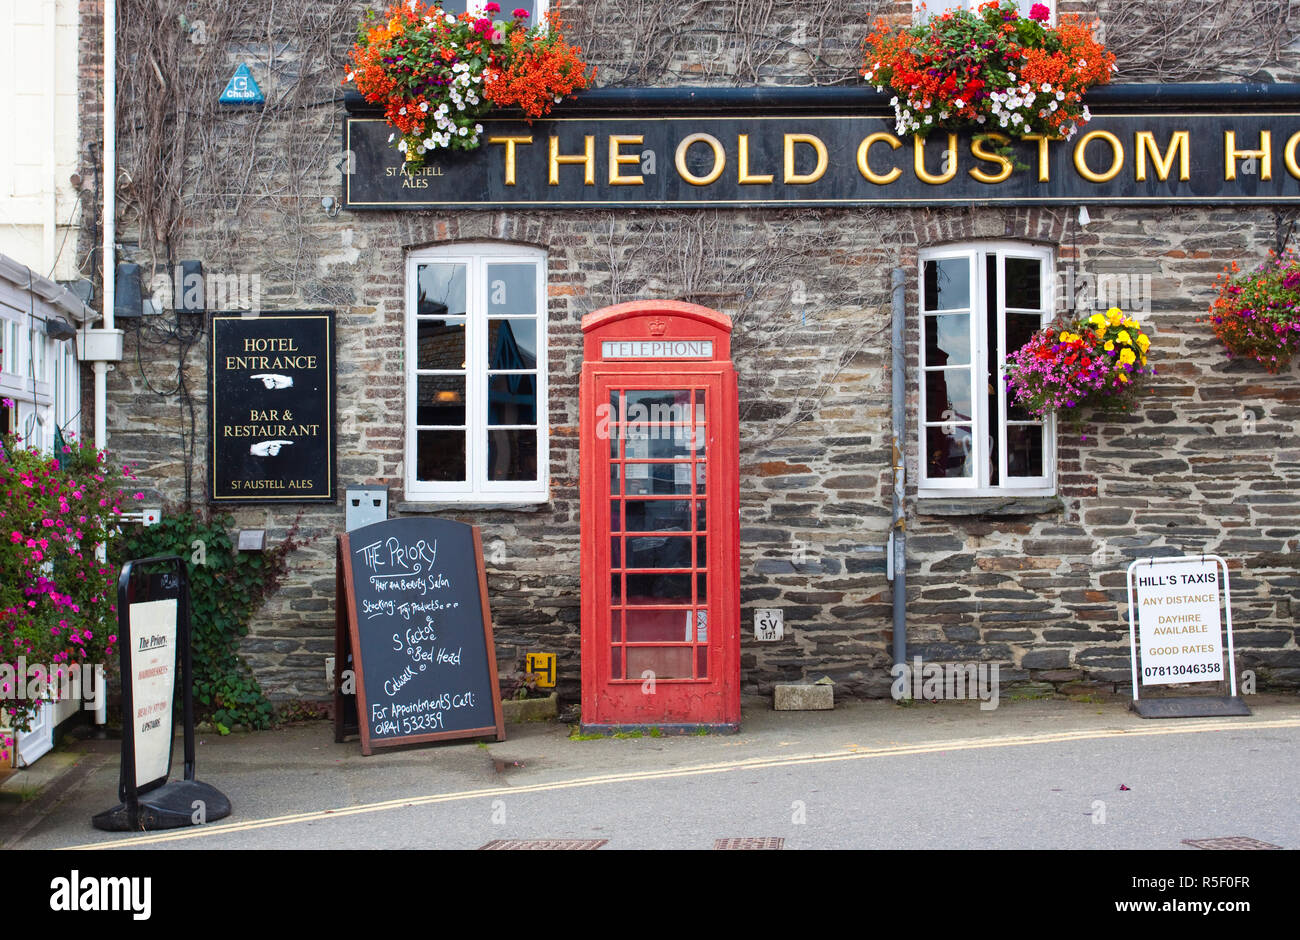 Telephone box outside pub, Padstow, Cornwall, England - Stock Image